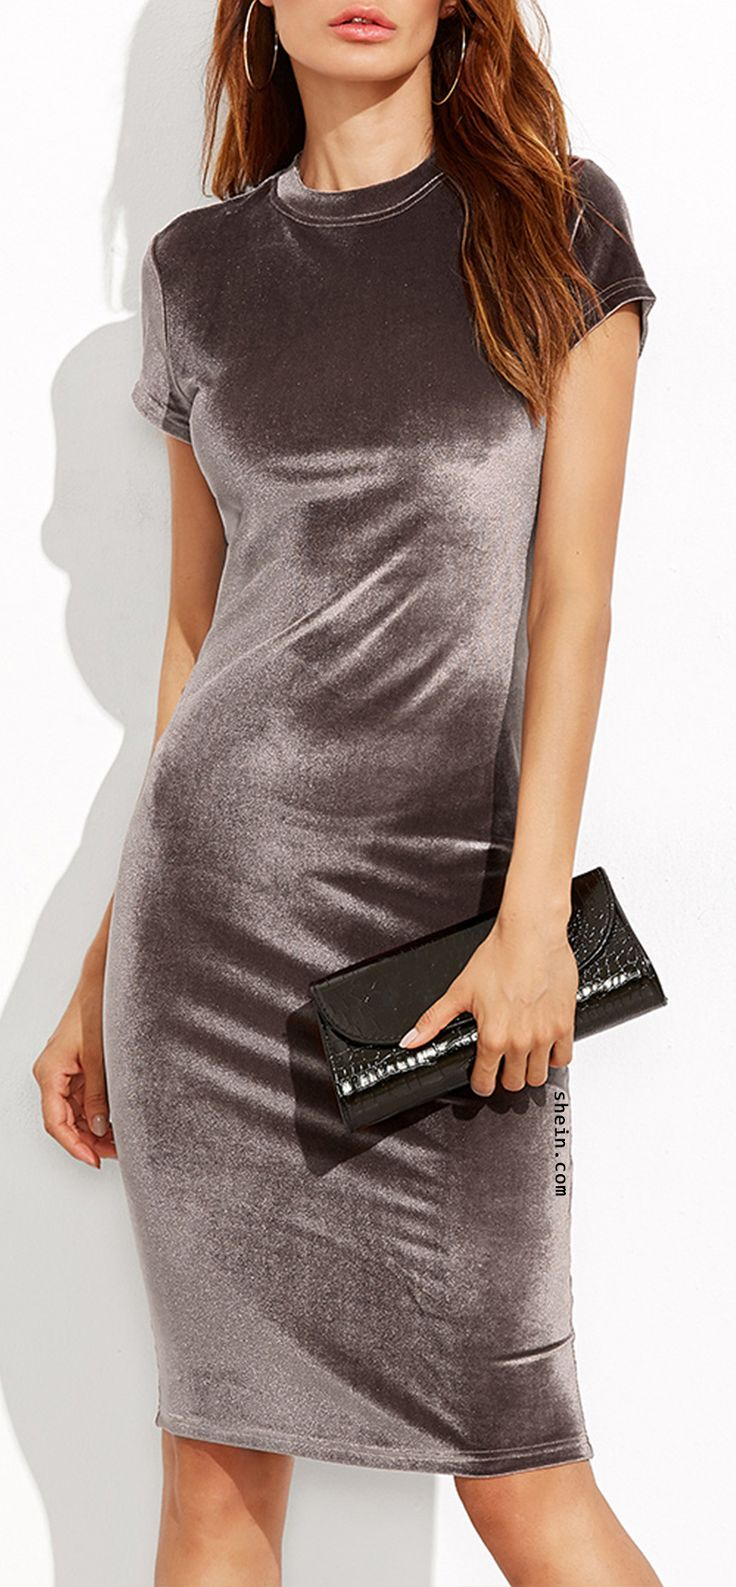 Hot haute fashion-velvet clothing. $9.9 for Brown Velvet Sheath Dress at shein.com.